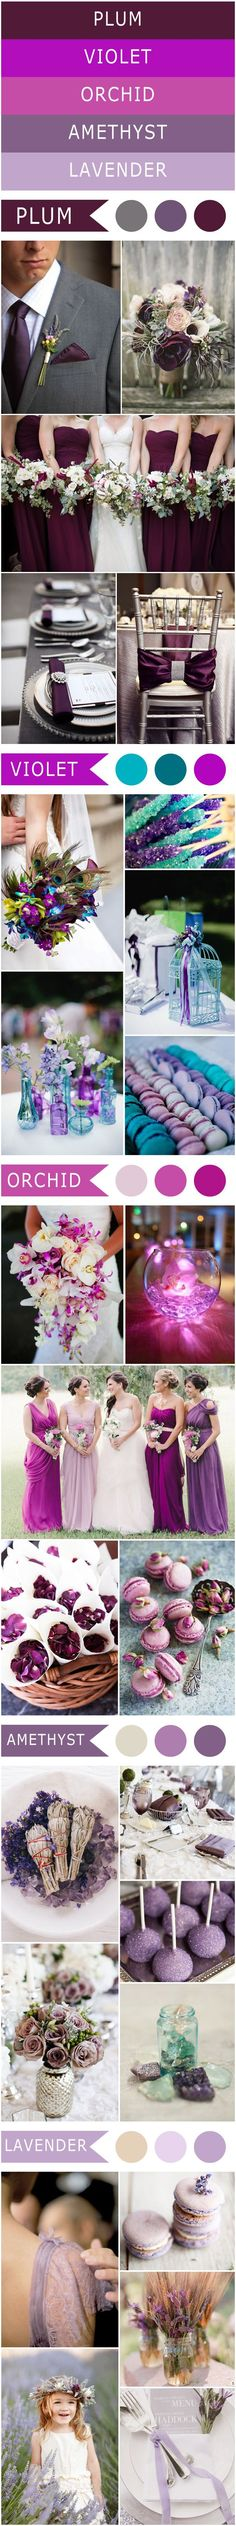 Amethyst - Different Shades of Purple Wedding Color Ideas-Plum, Violet, Orchid, Amethyst, Lavender